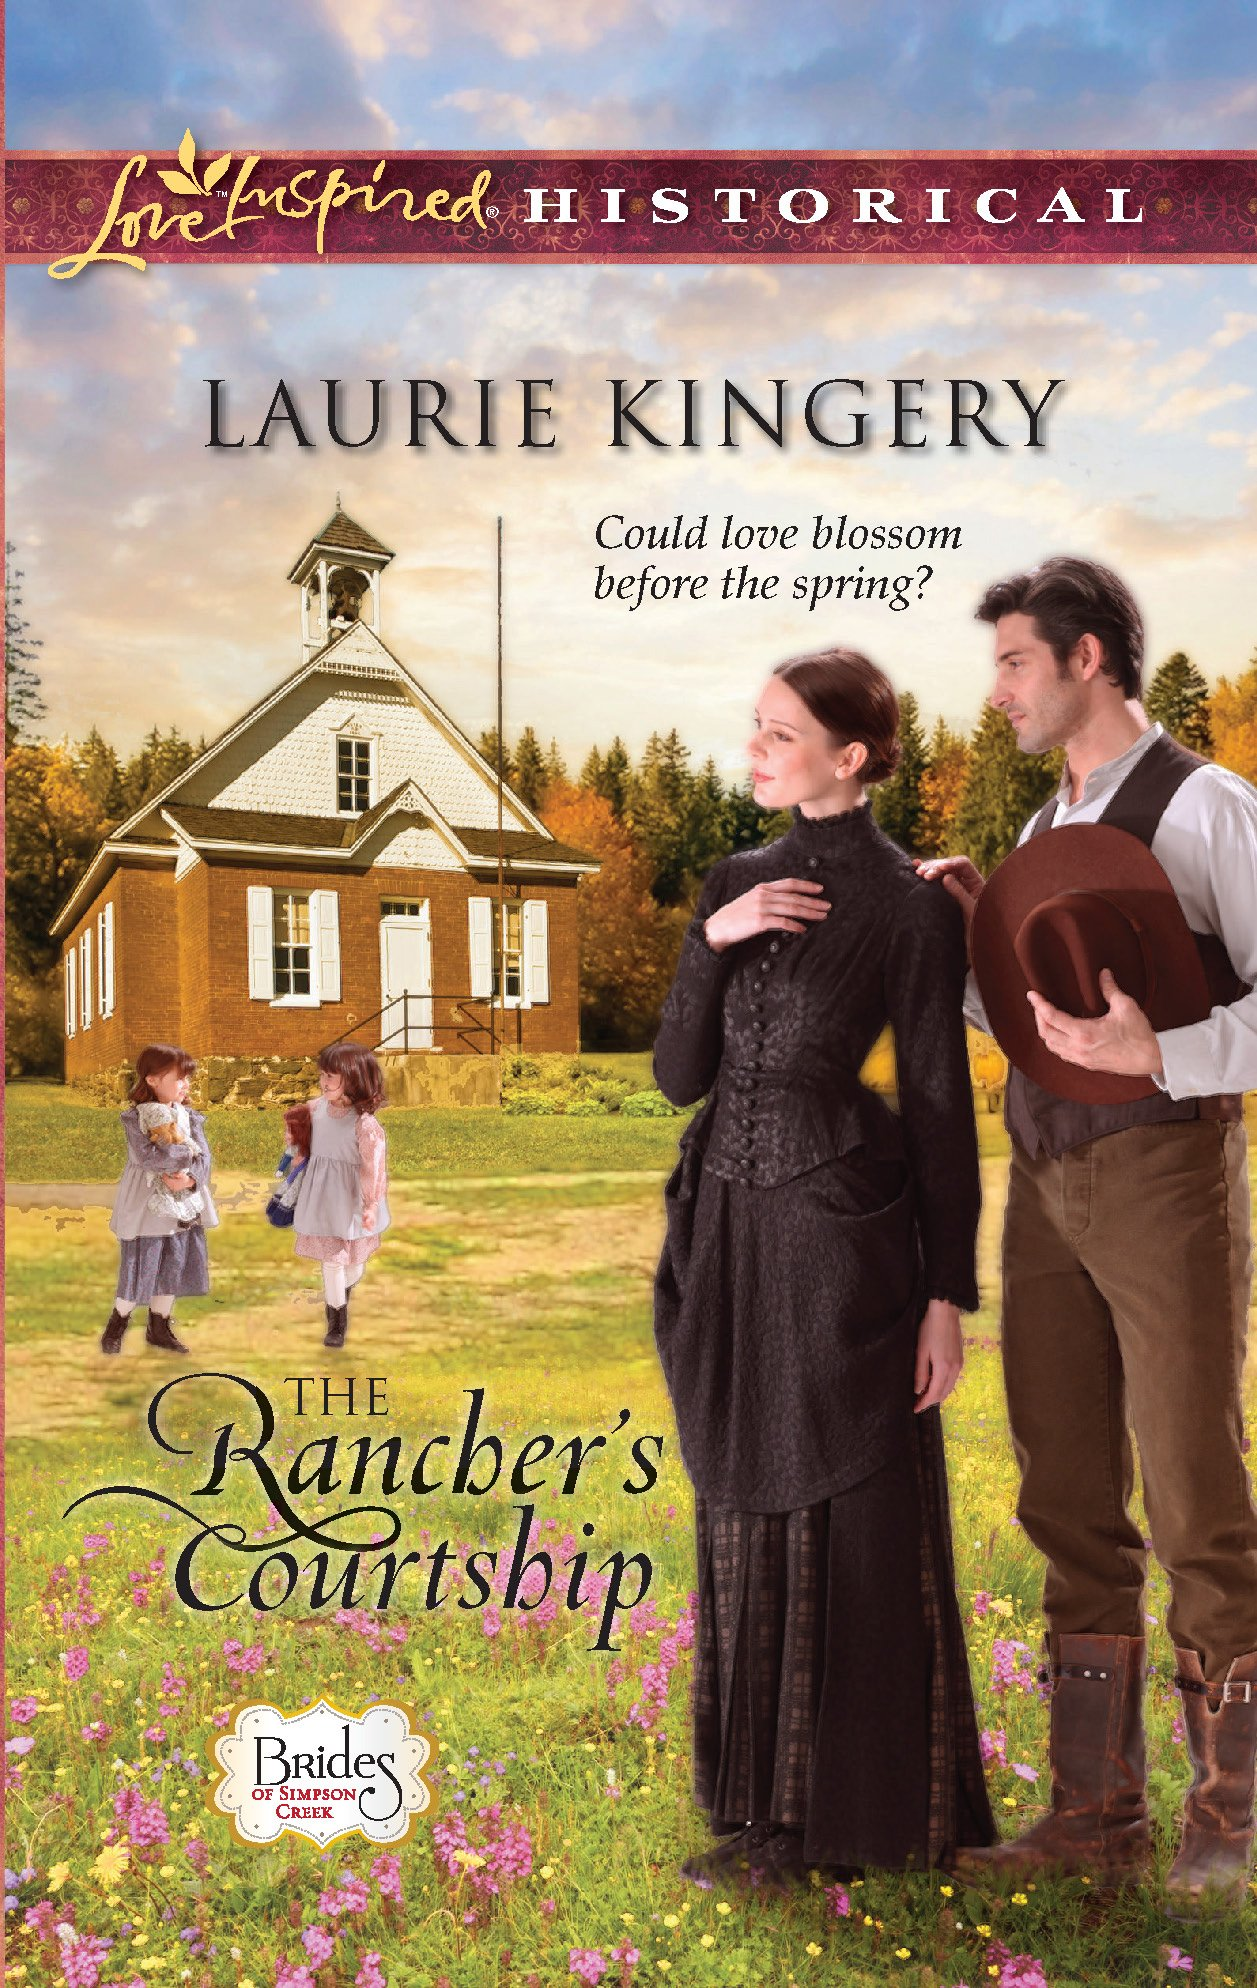 The Rancher's Courtship (Brides of Simpson Creek) PDF